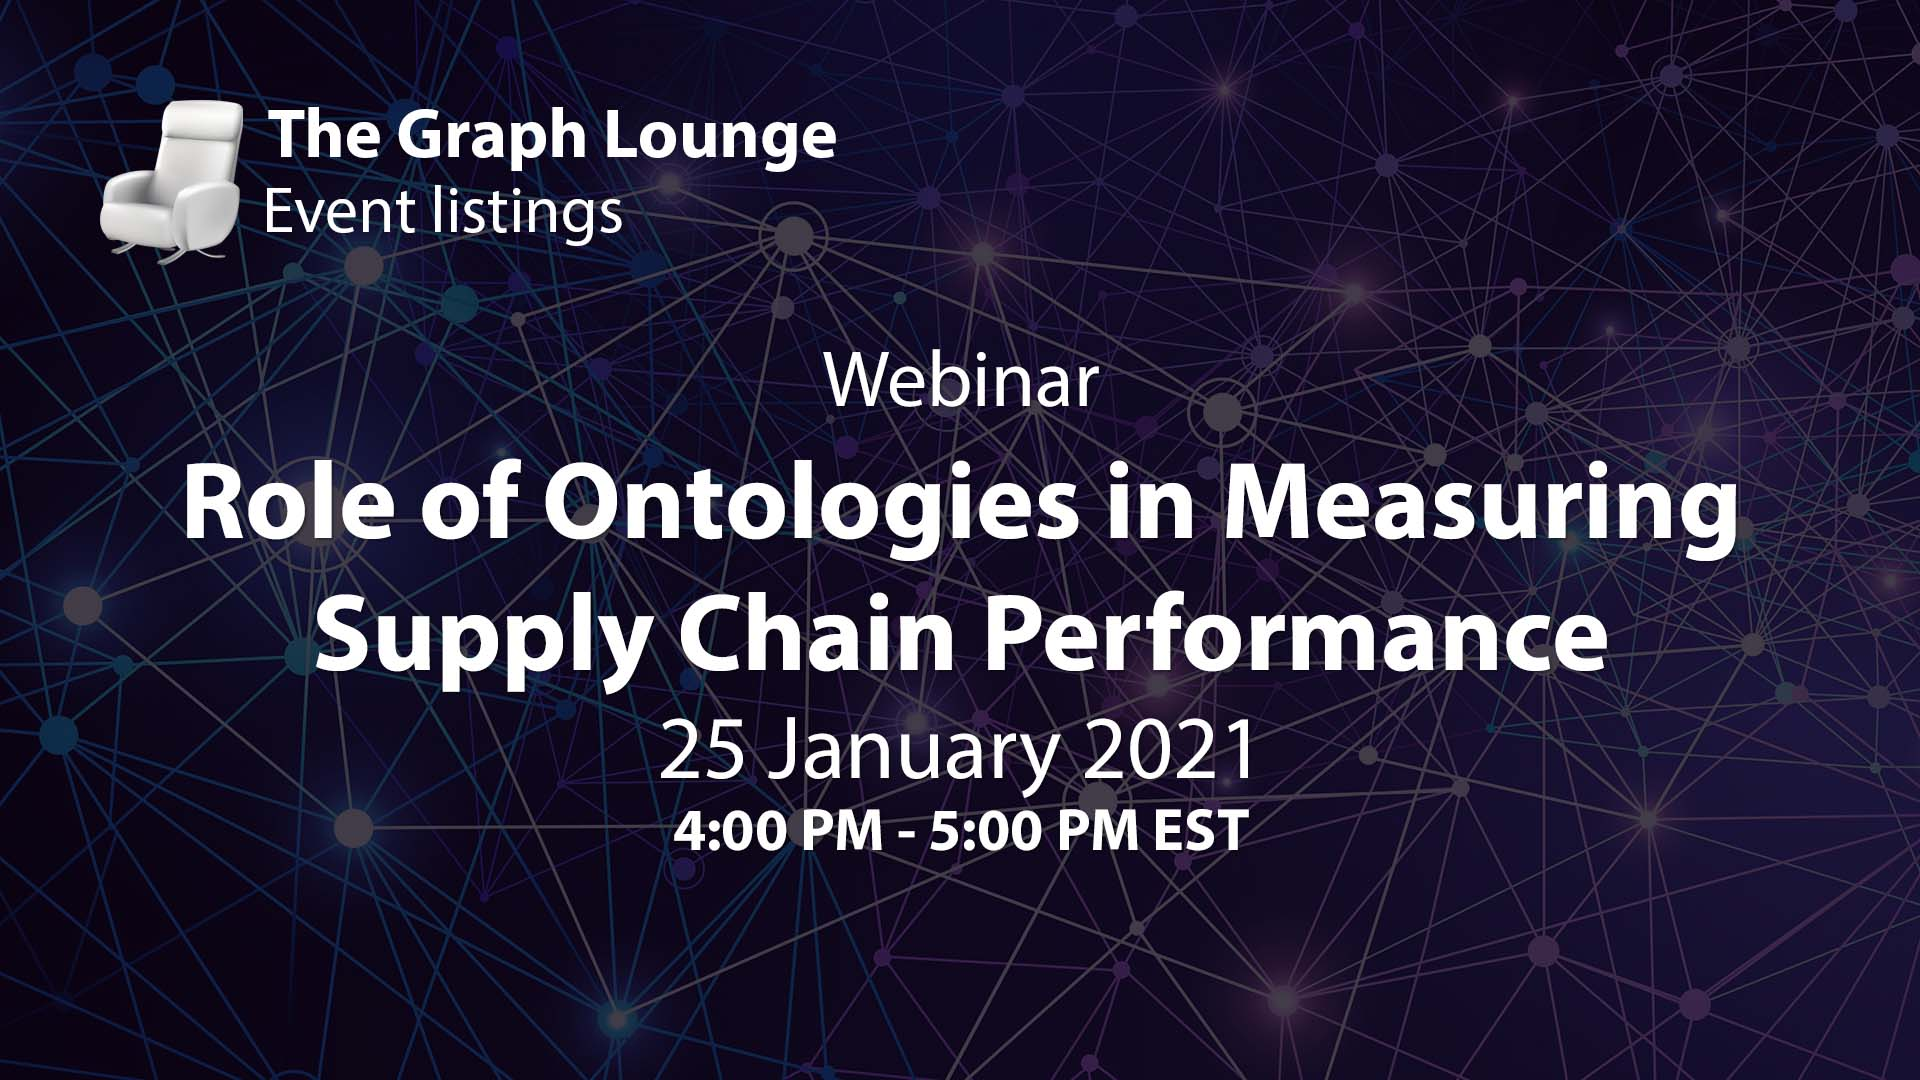 Role of Ontologies in Measuring Supply Chain Performance